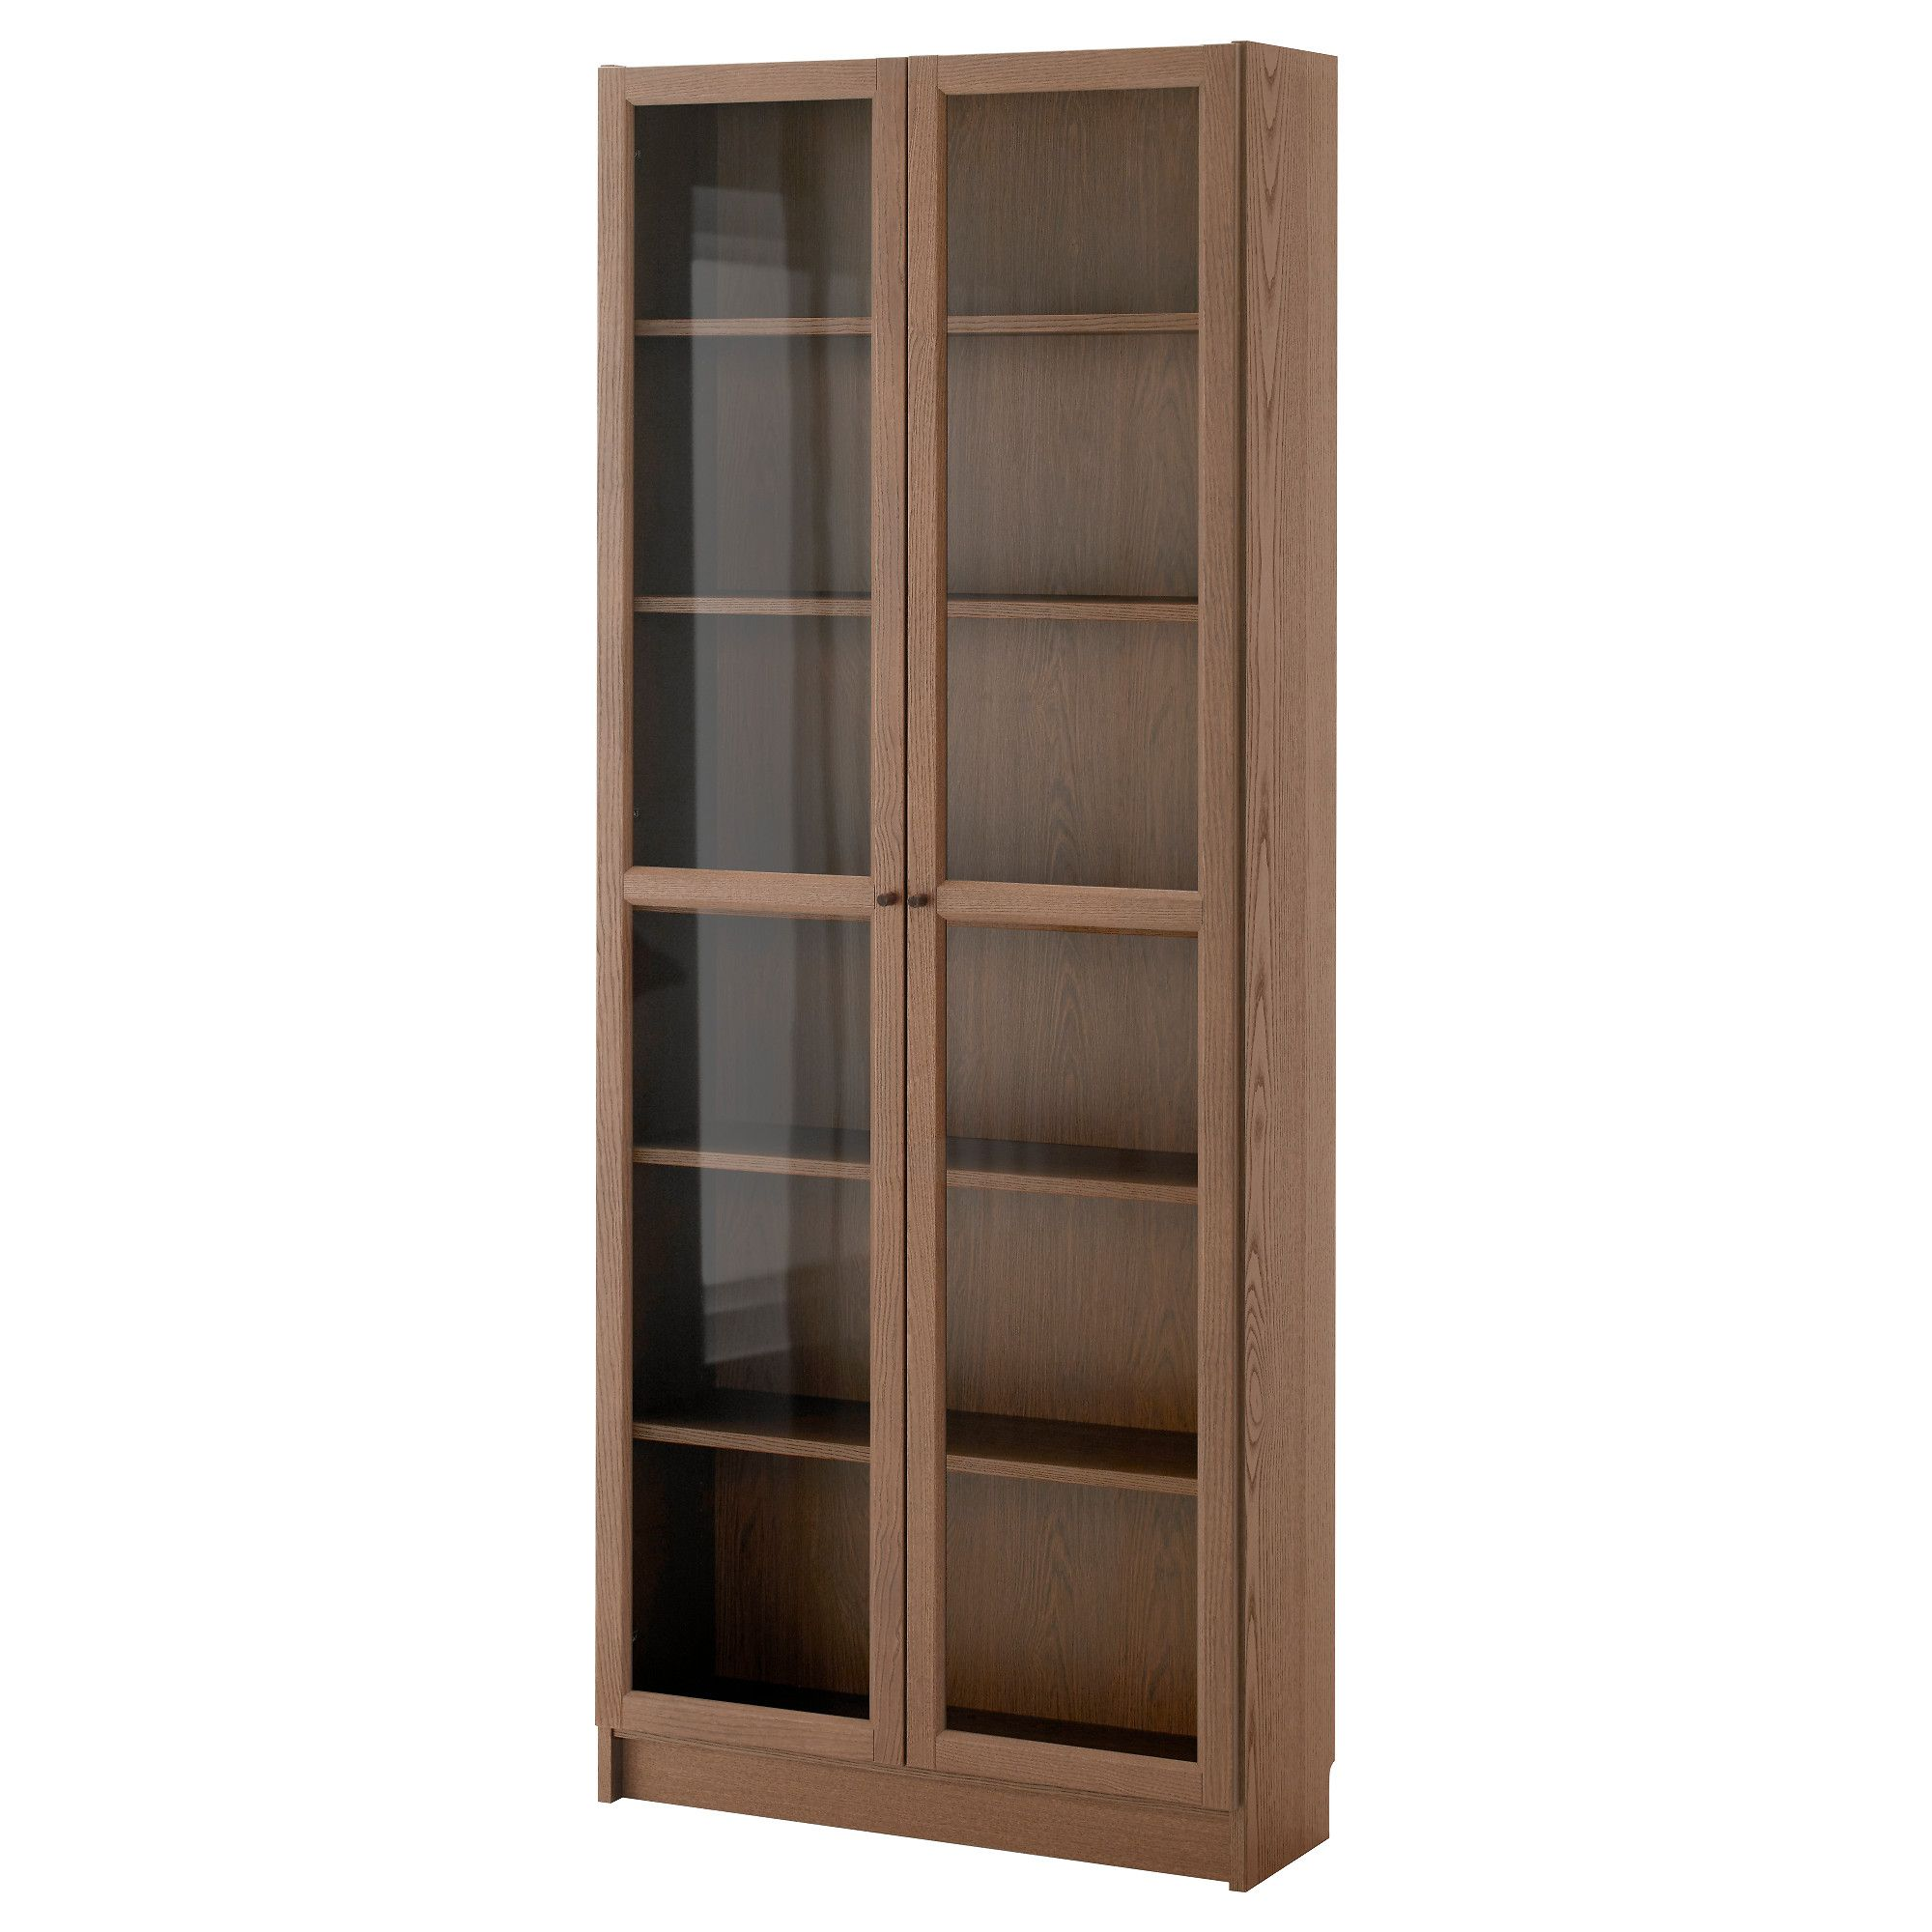 Us Furniture And Home Furnishings With Images Ikea Bookcase Bookcase With Glass Doors Bookcase